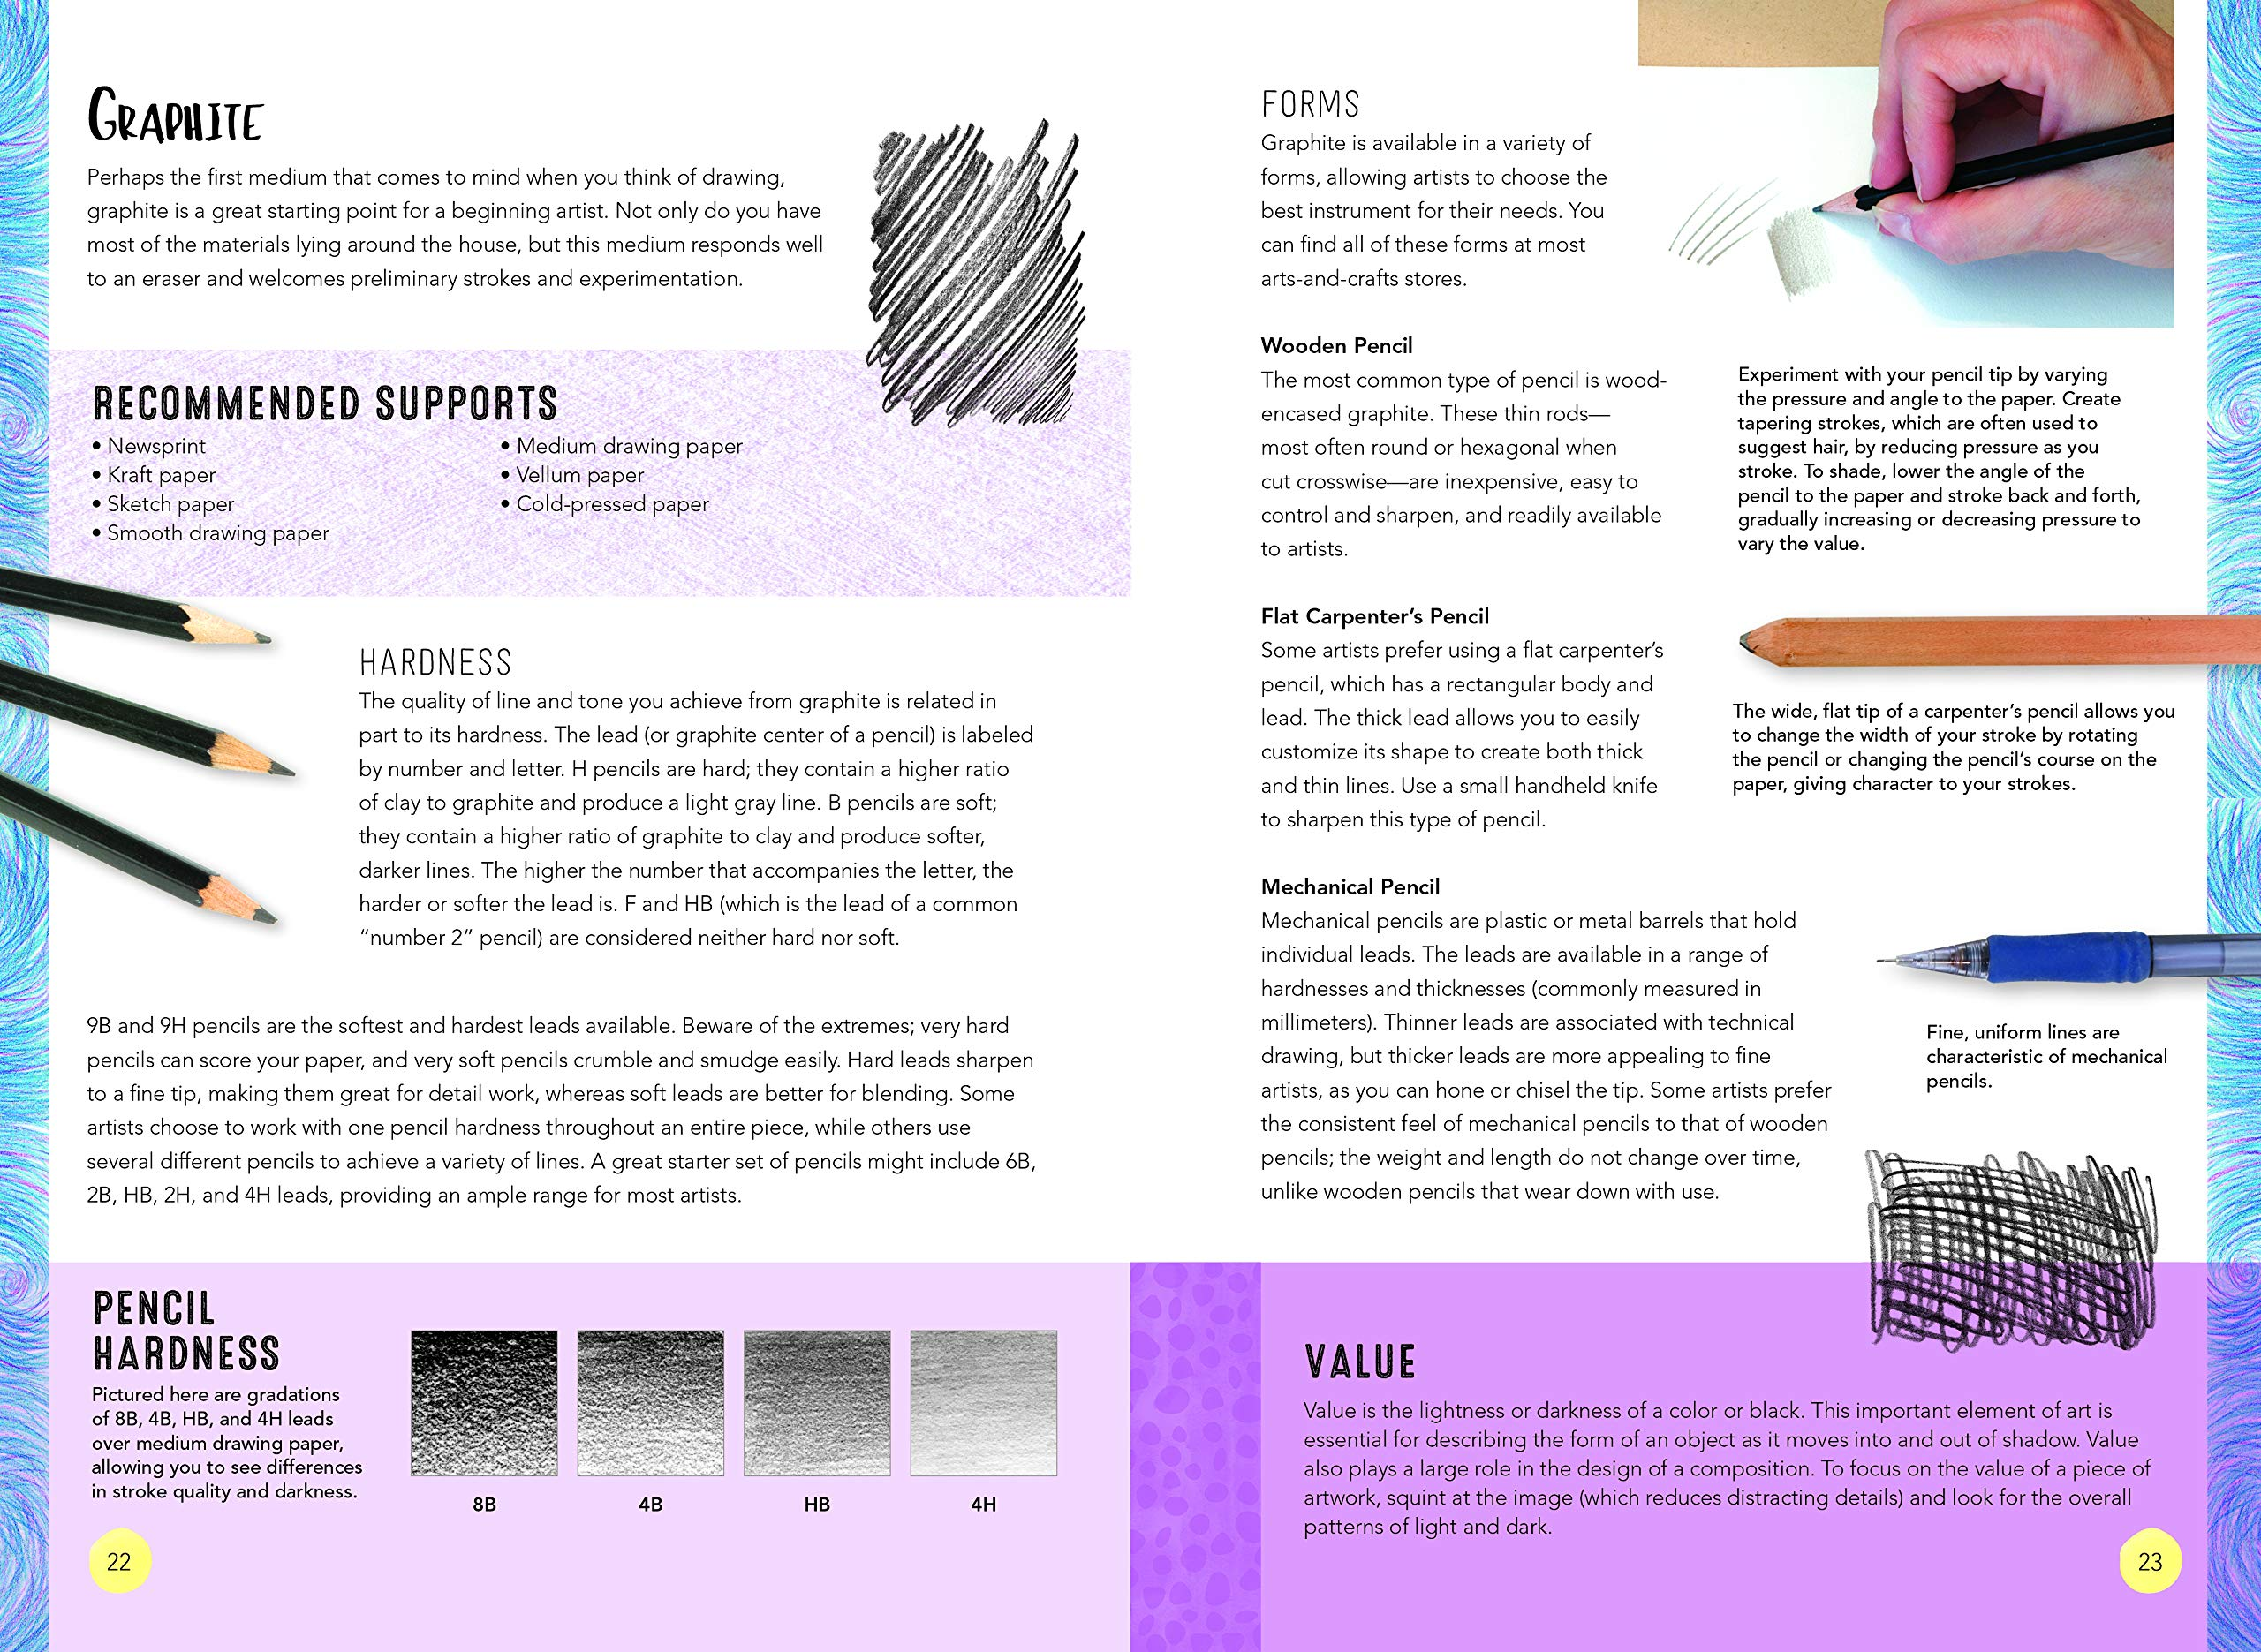 Artist Toolbox: Drawing Tools & Materials: A practical guide